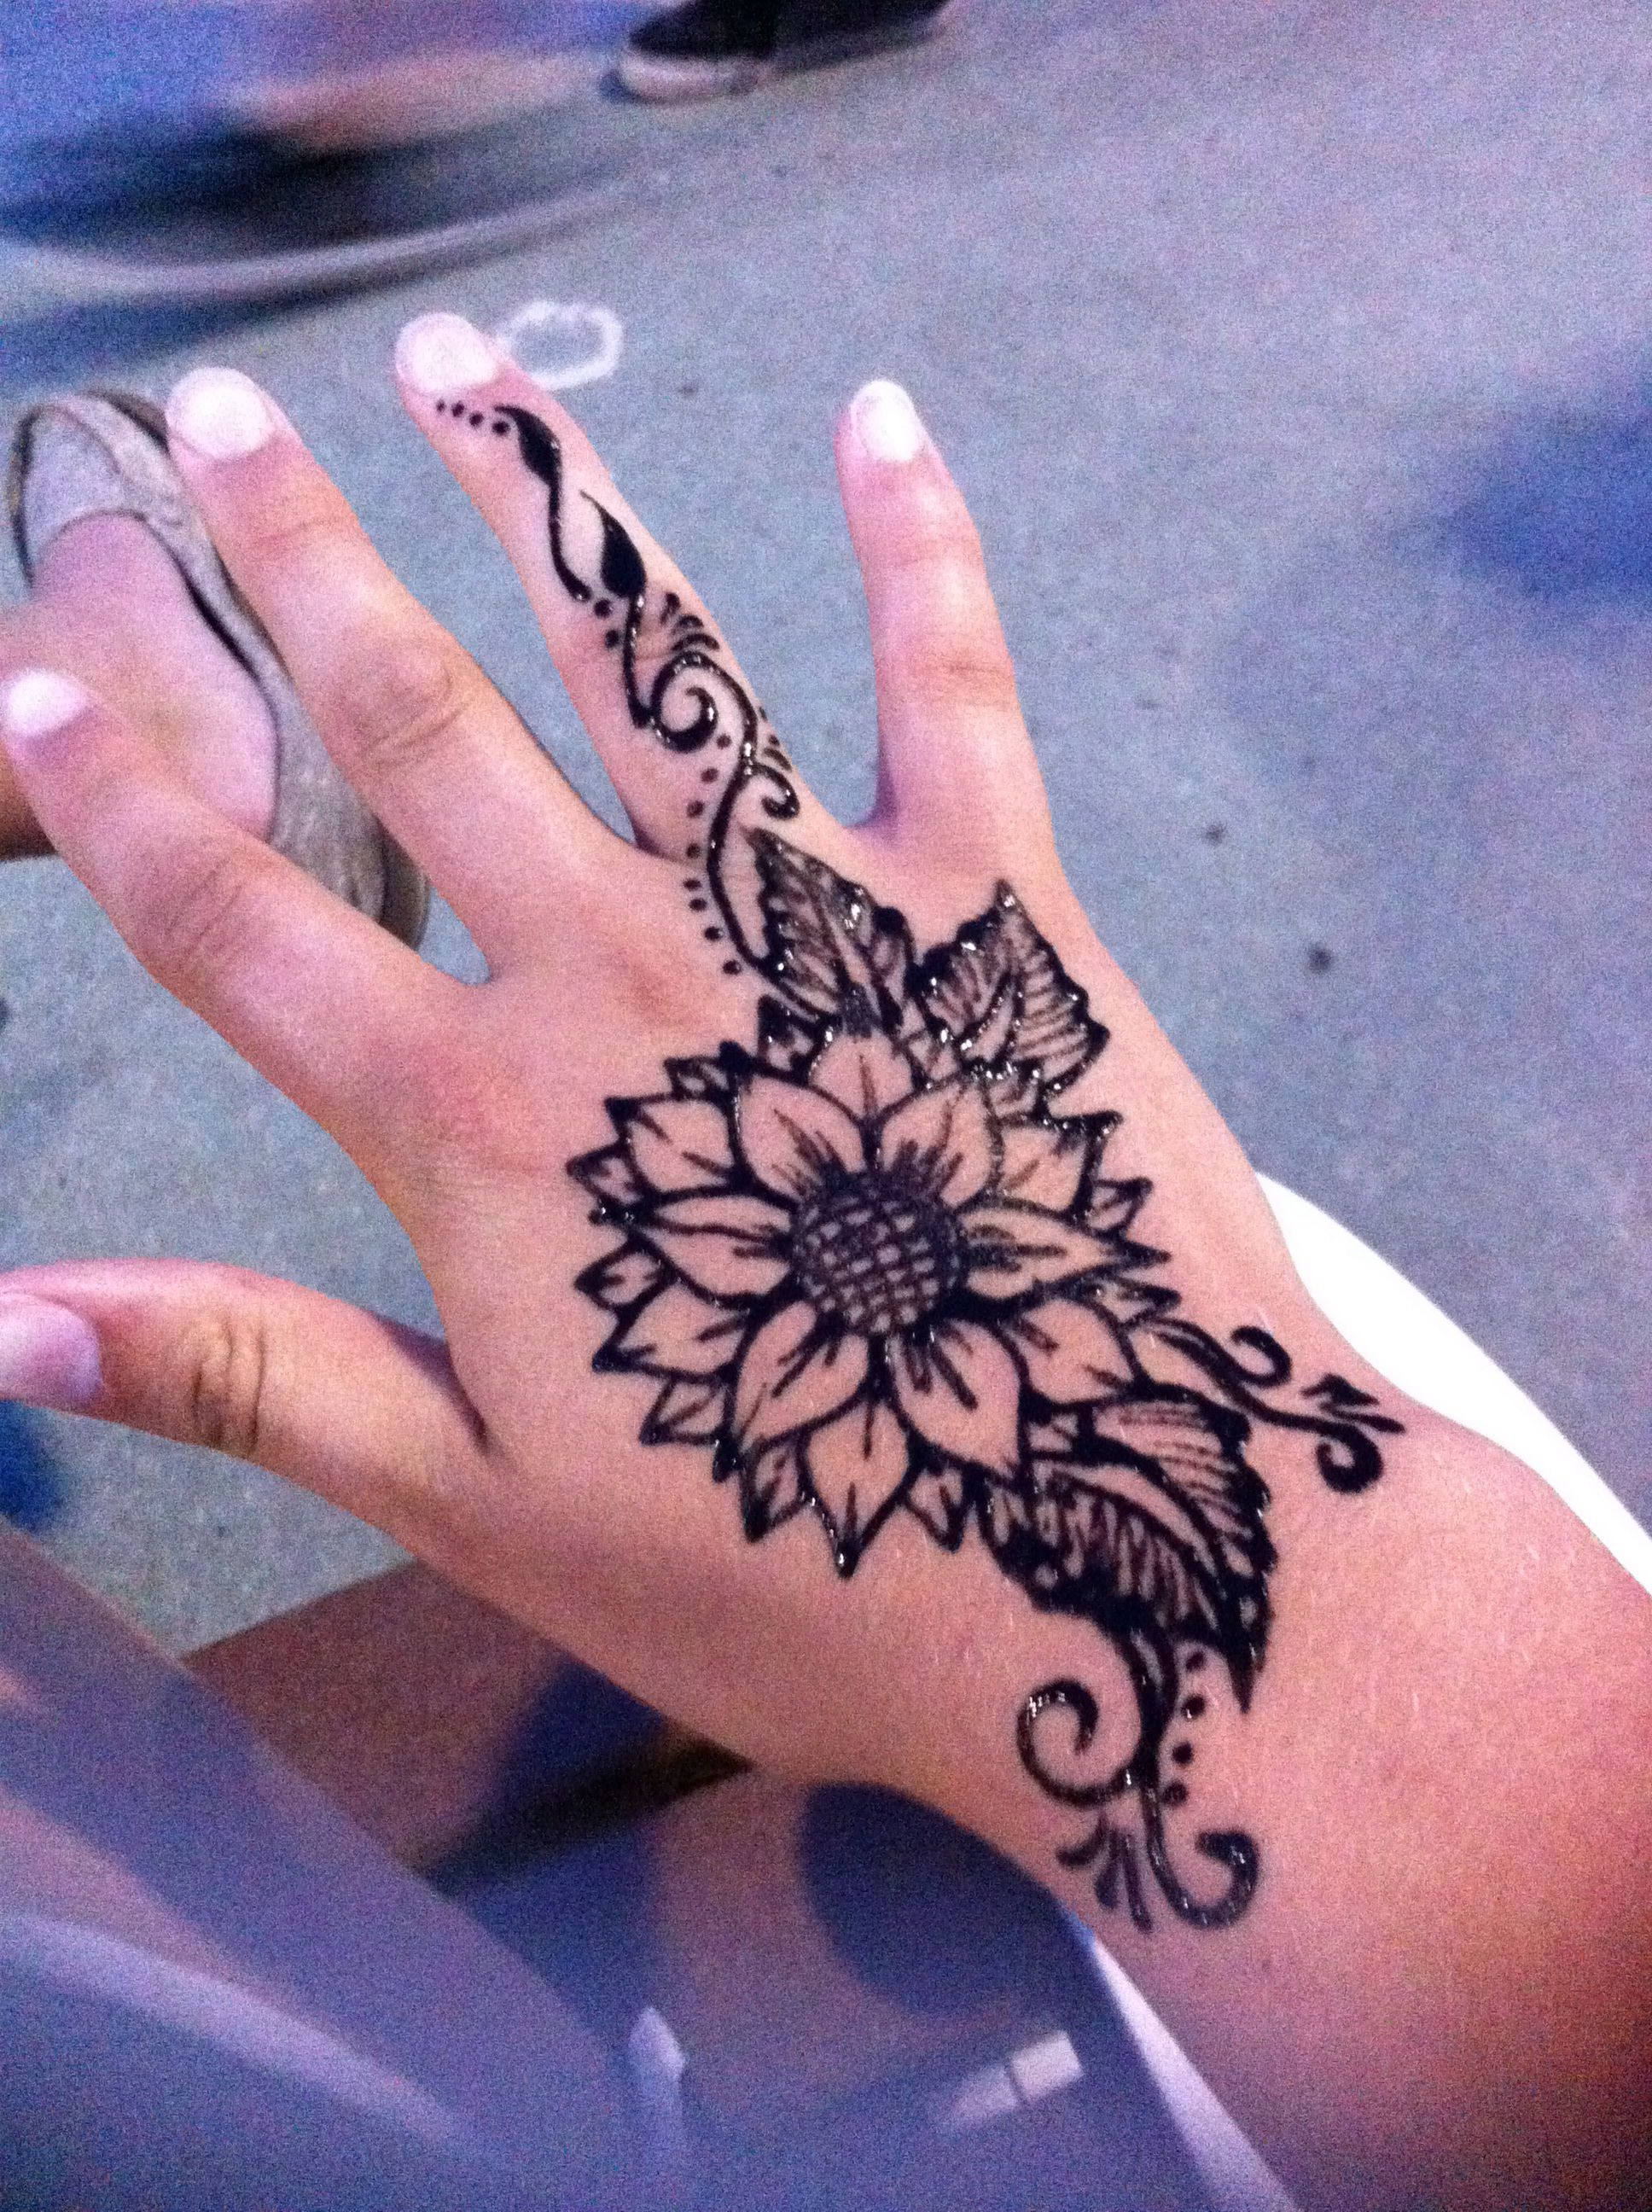 Sunflower Henna Tattoo Henna Tattoo Designs Simple Henna Tattoo Henna Tattoo